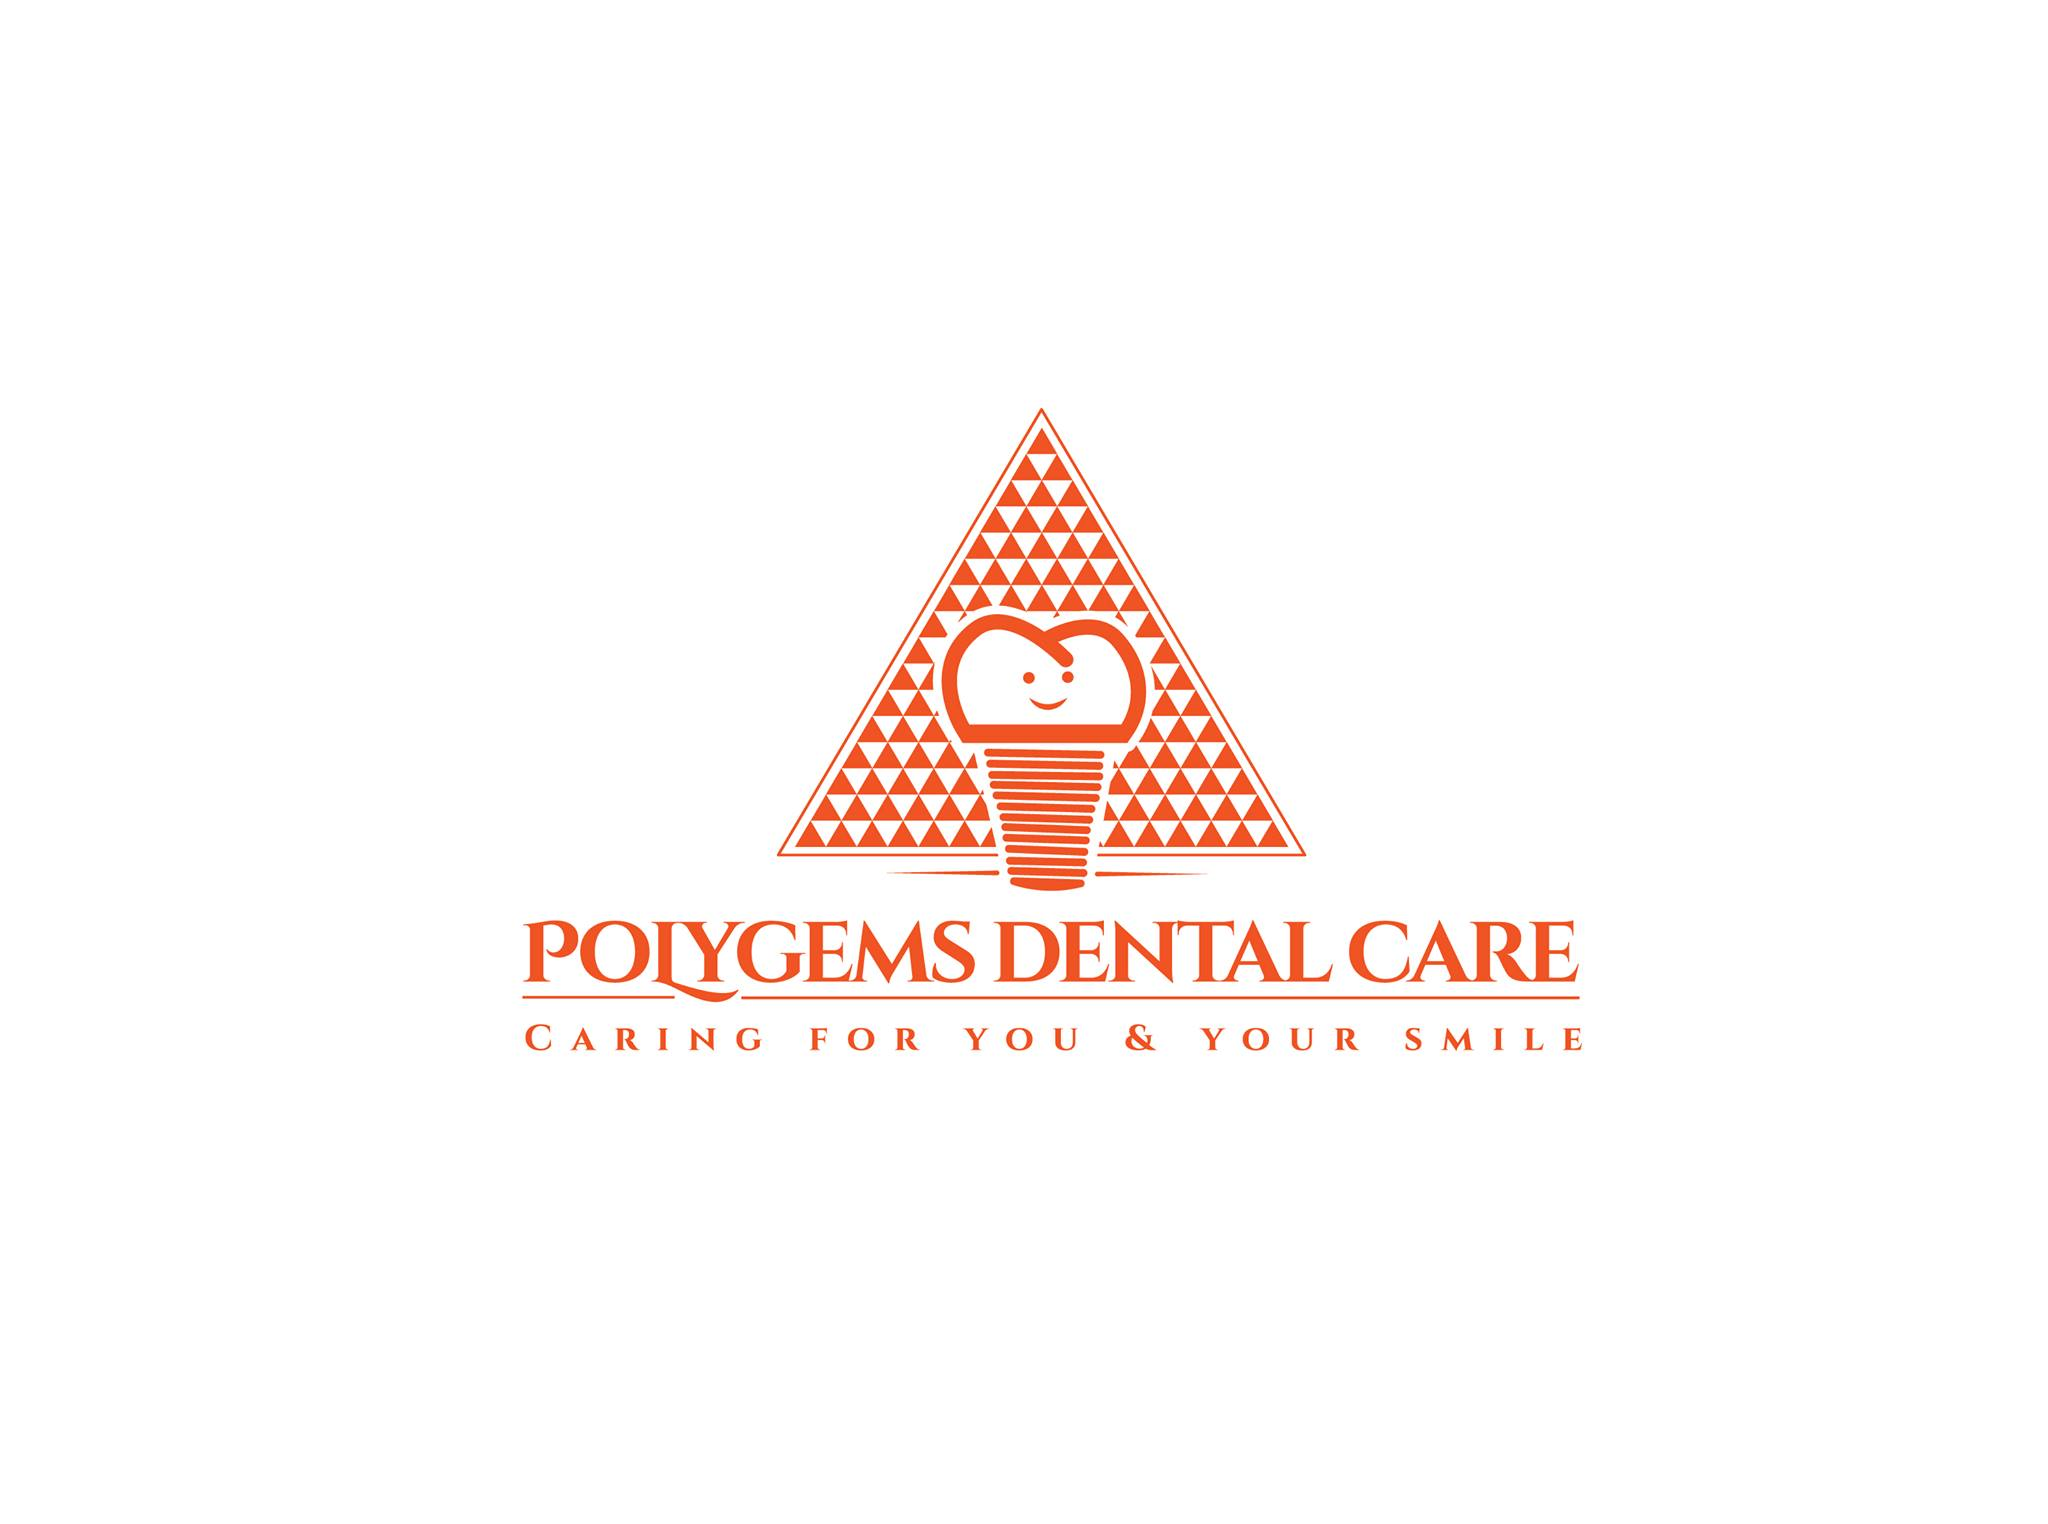 POLYGEMS (PG) DENTAL CARE